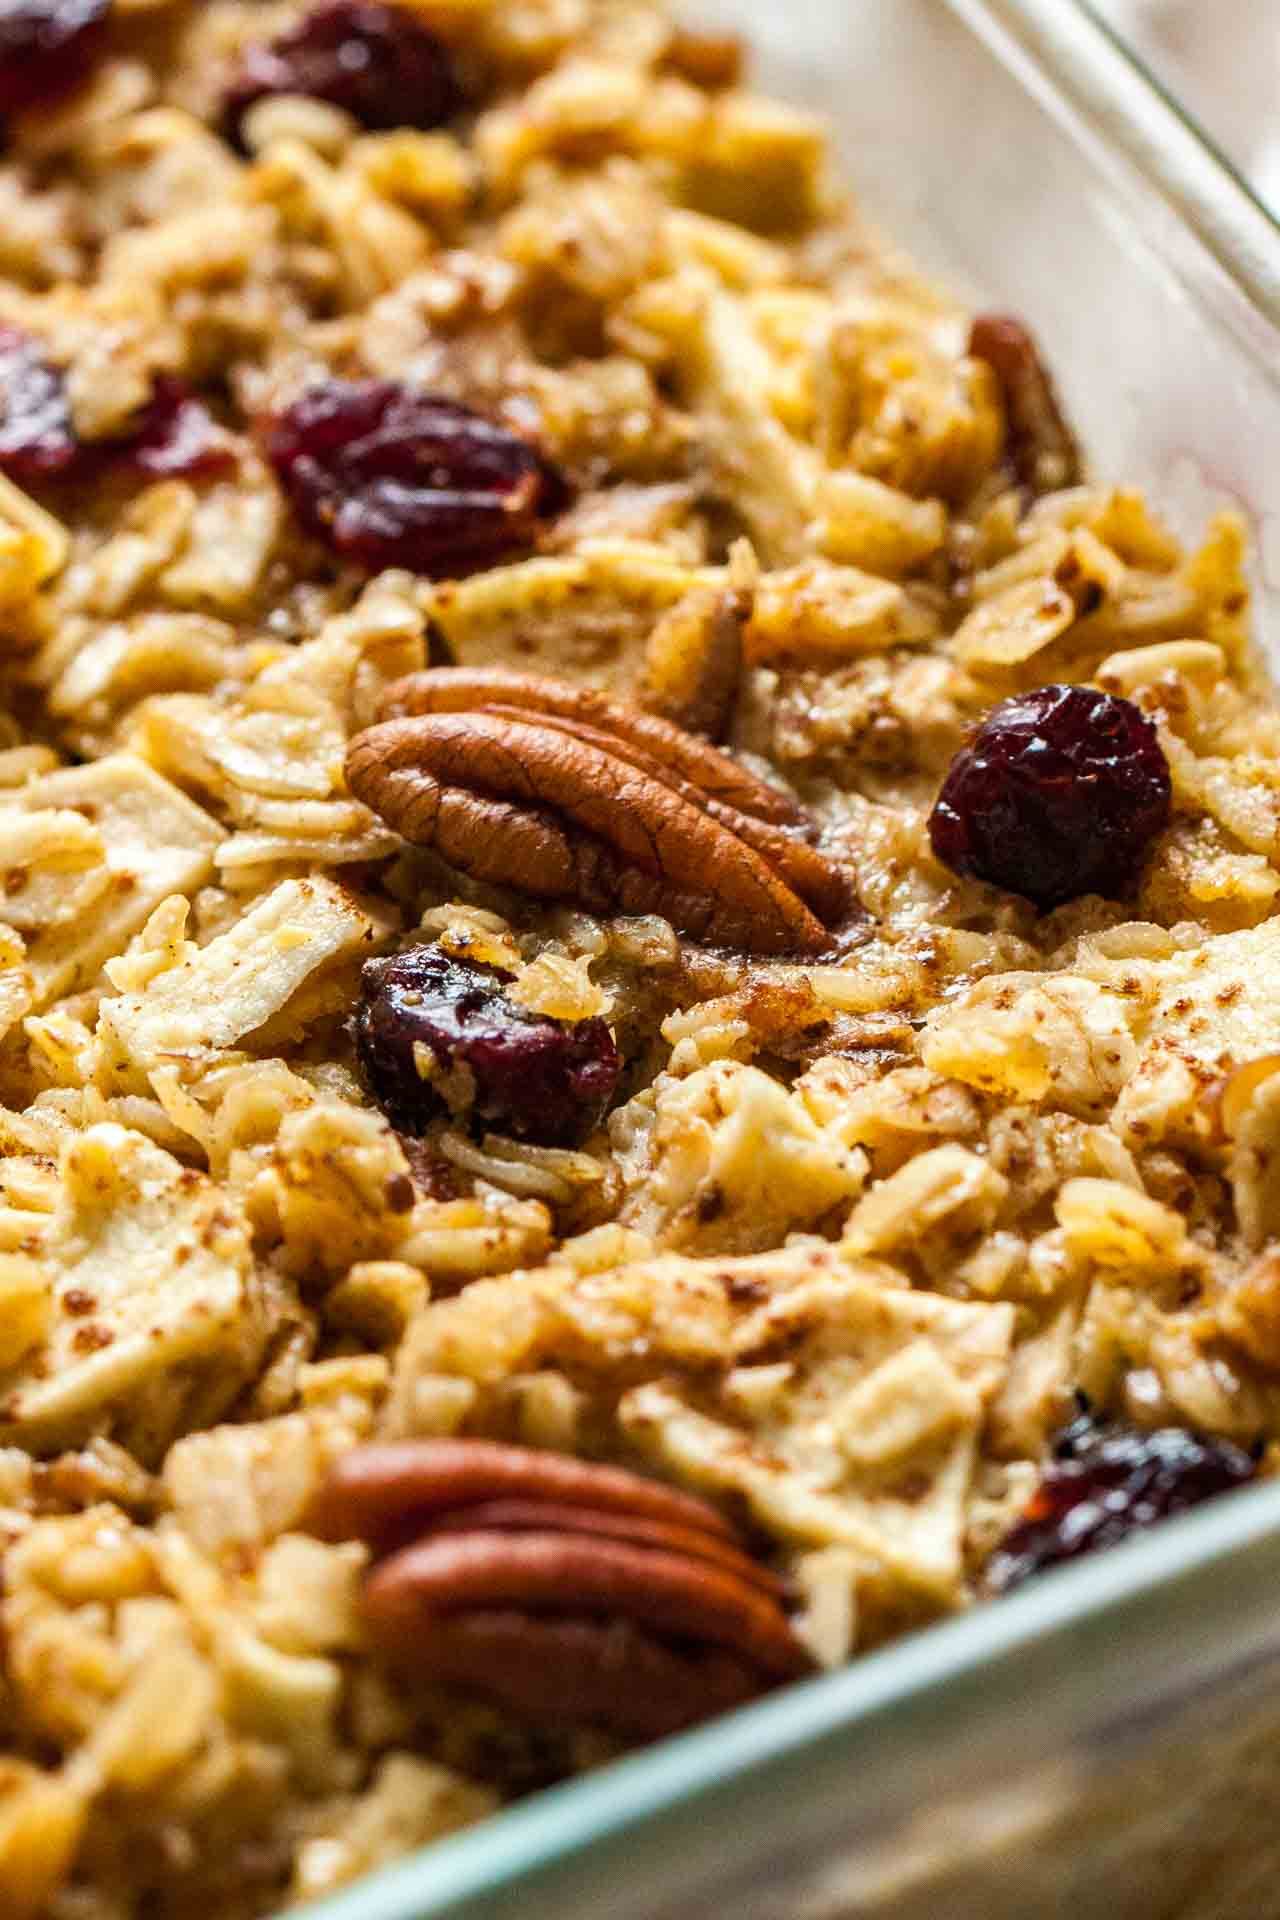 Oven Baked Oatmeal with apples, pecans, and cranberries.